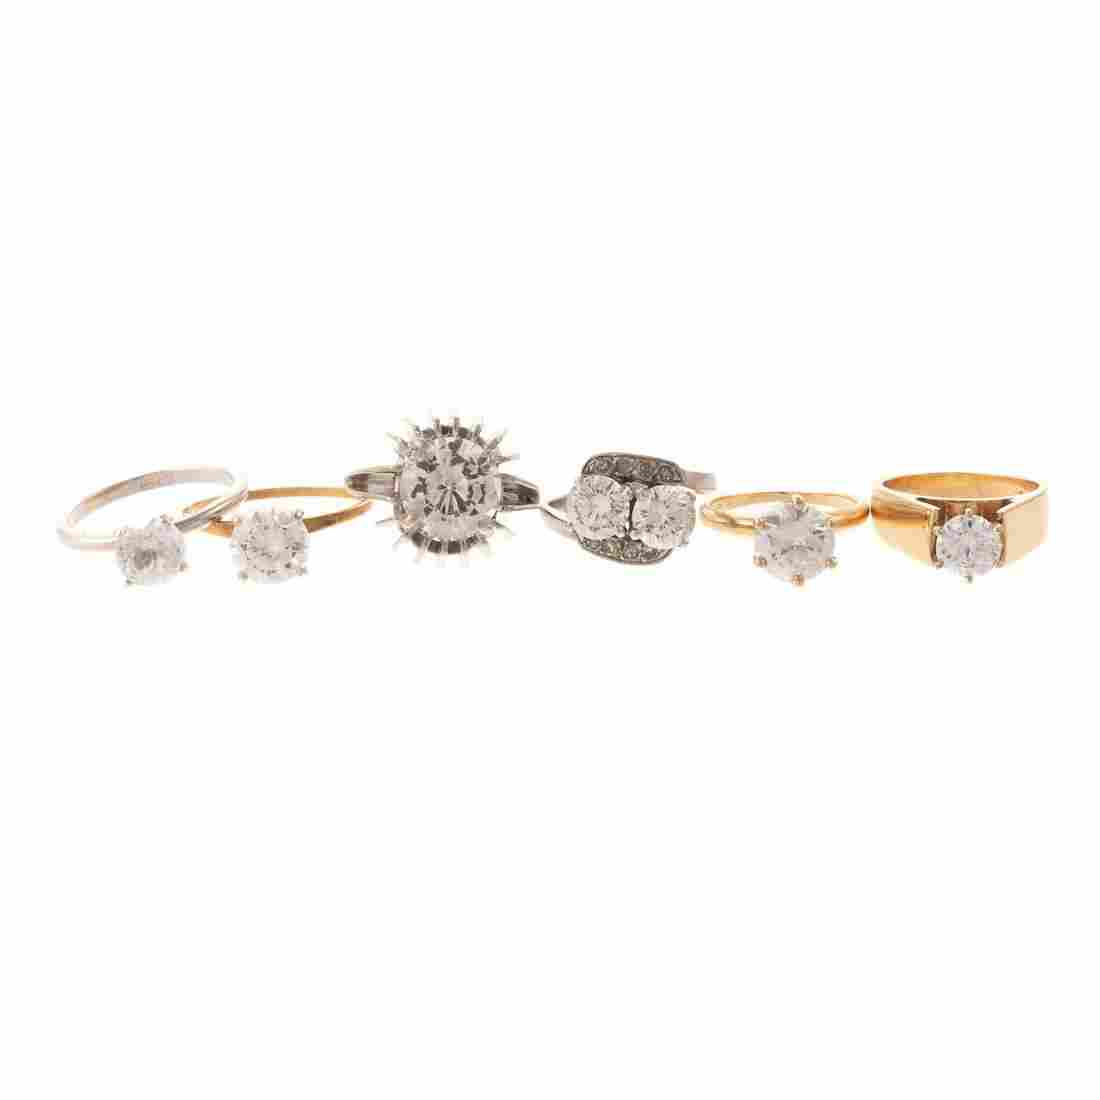 Collection of Lady's Fashion Rings in Gold